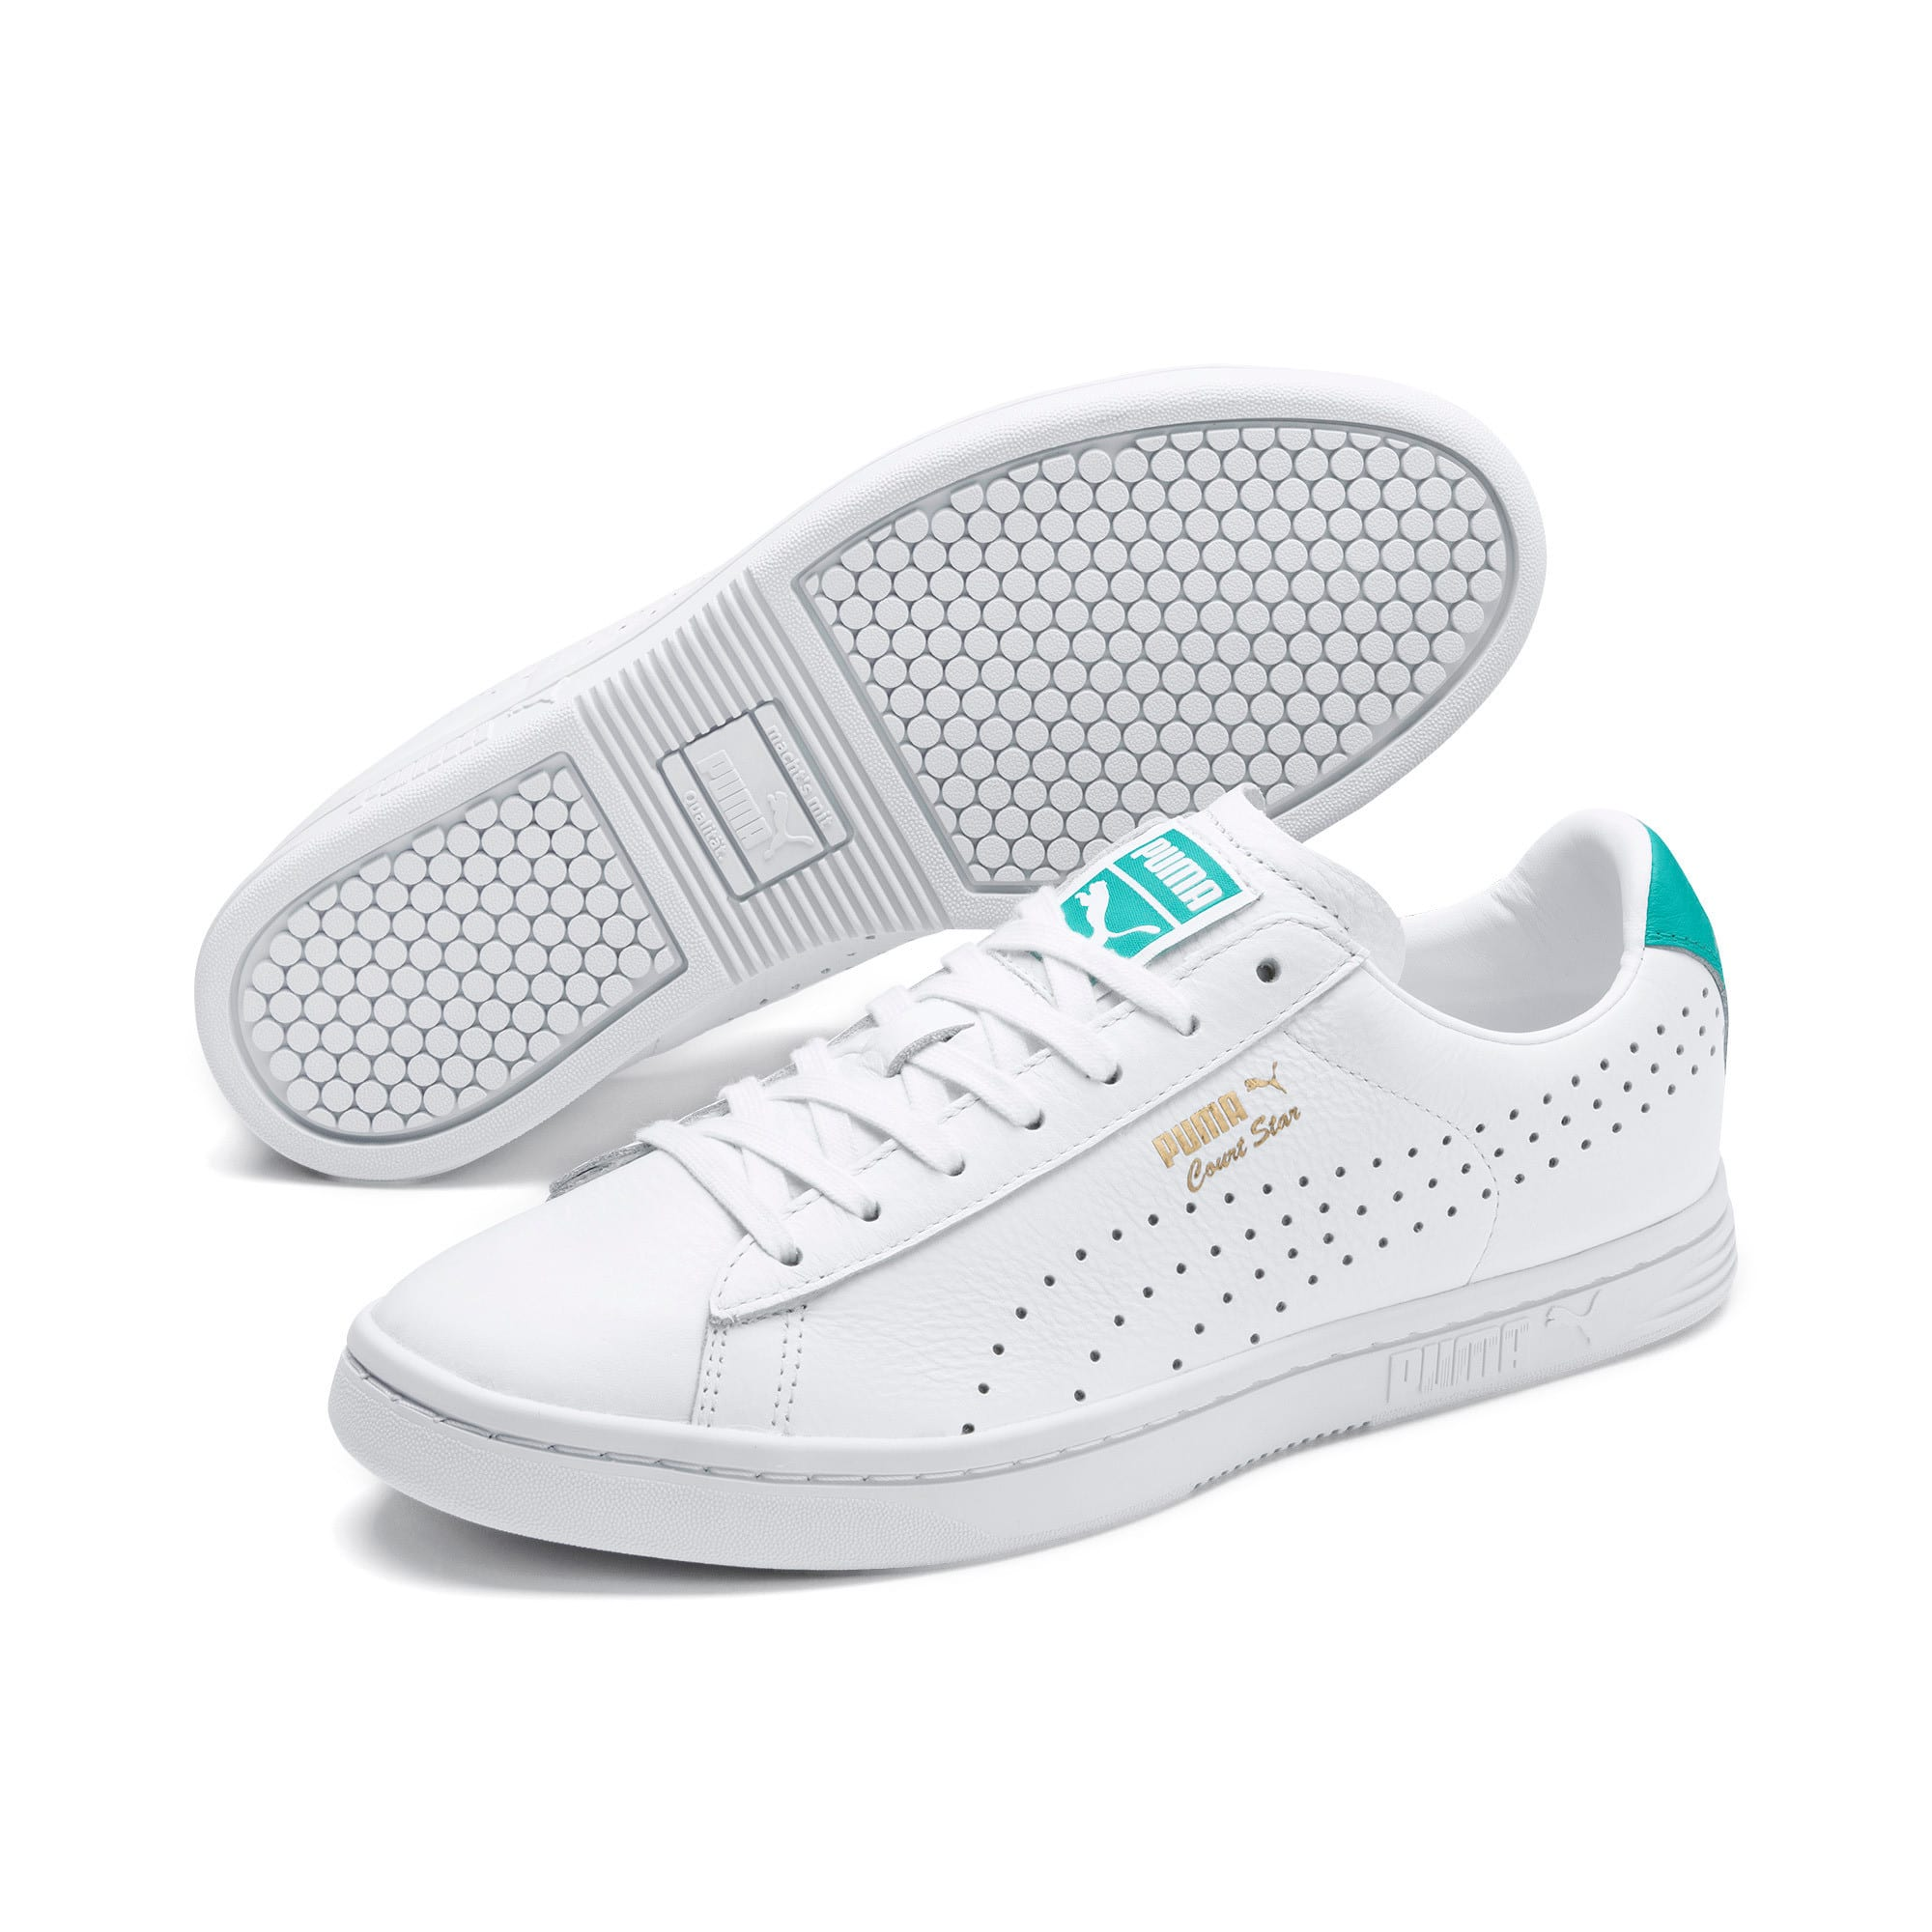 plus récent 6d302 ae975 Court Star Sneakers